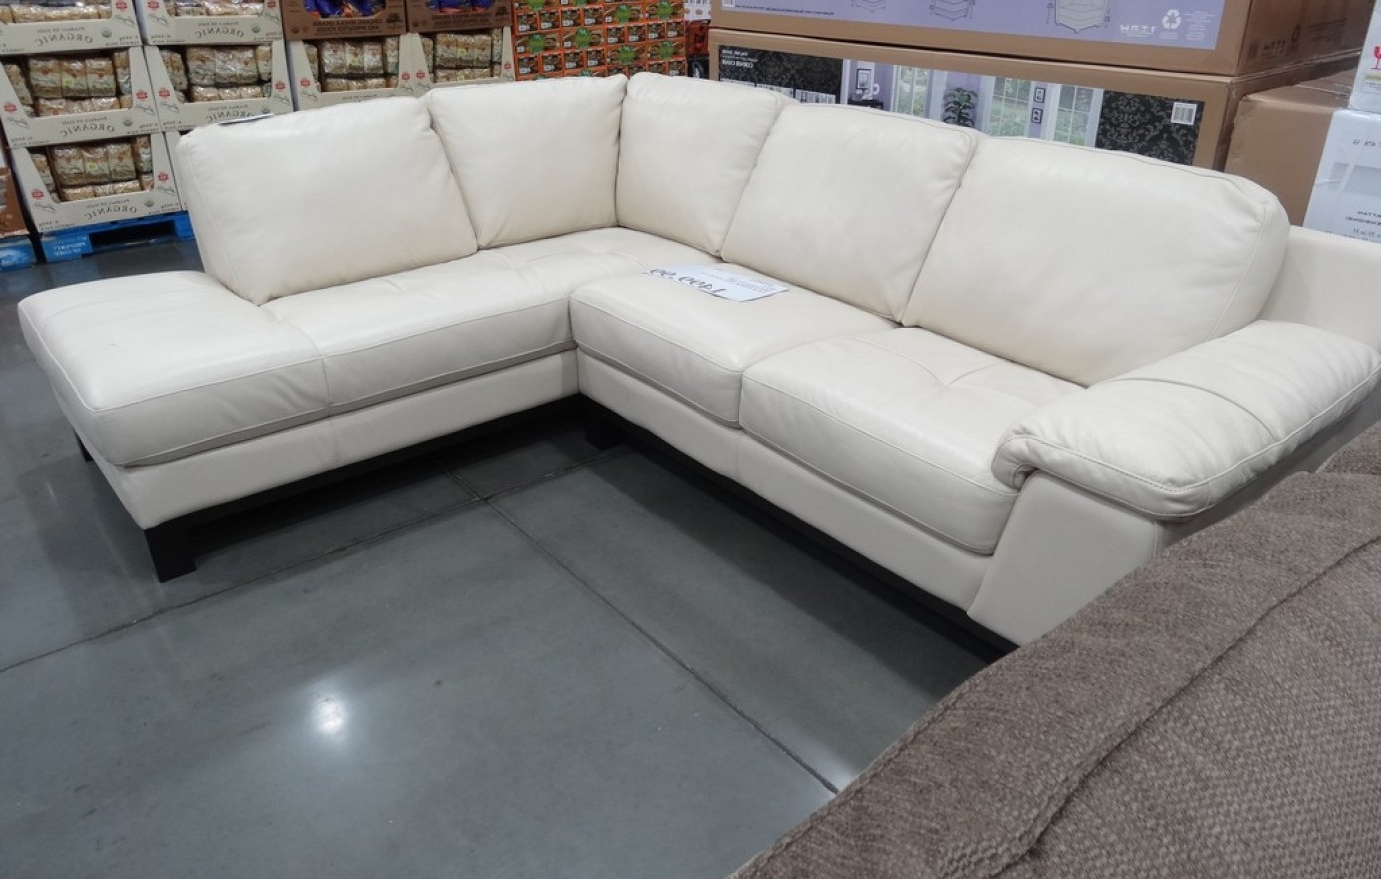 Costco Sectional Sleeper Sofa – Nrhcares With Recent Sectional Sofas At Costco (View 3 of 20)